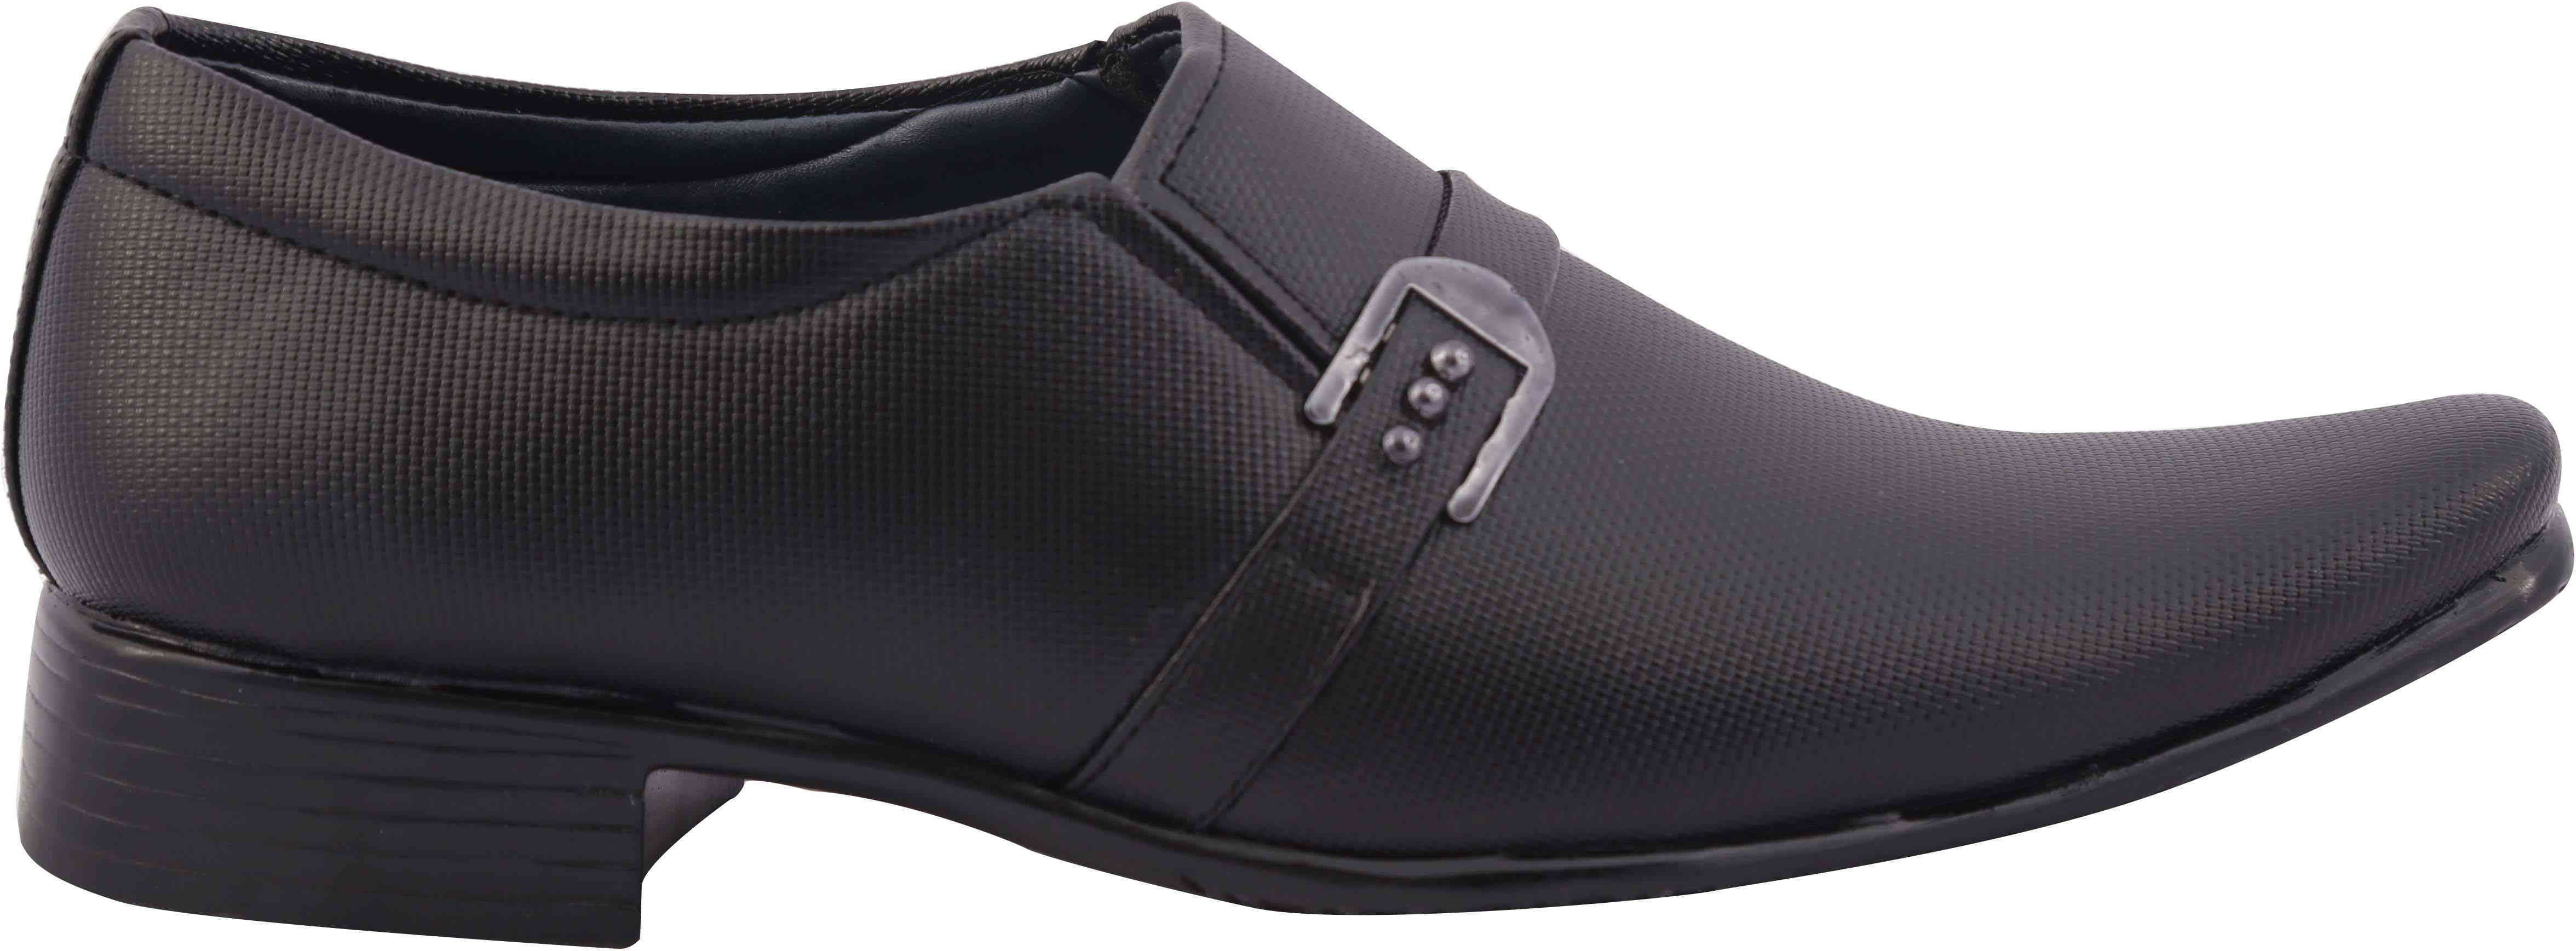 BALAS Balas Slip On Shoes Party Wear(Black) Image